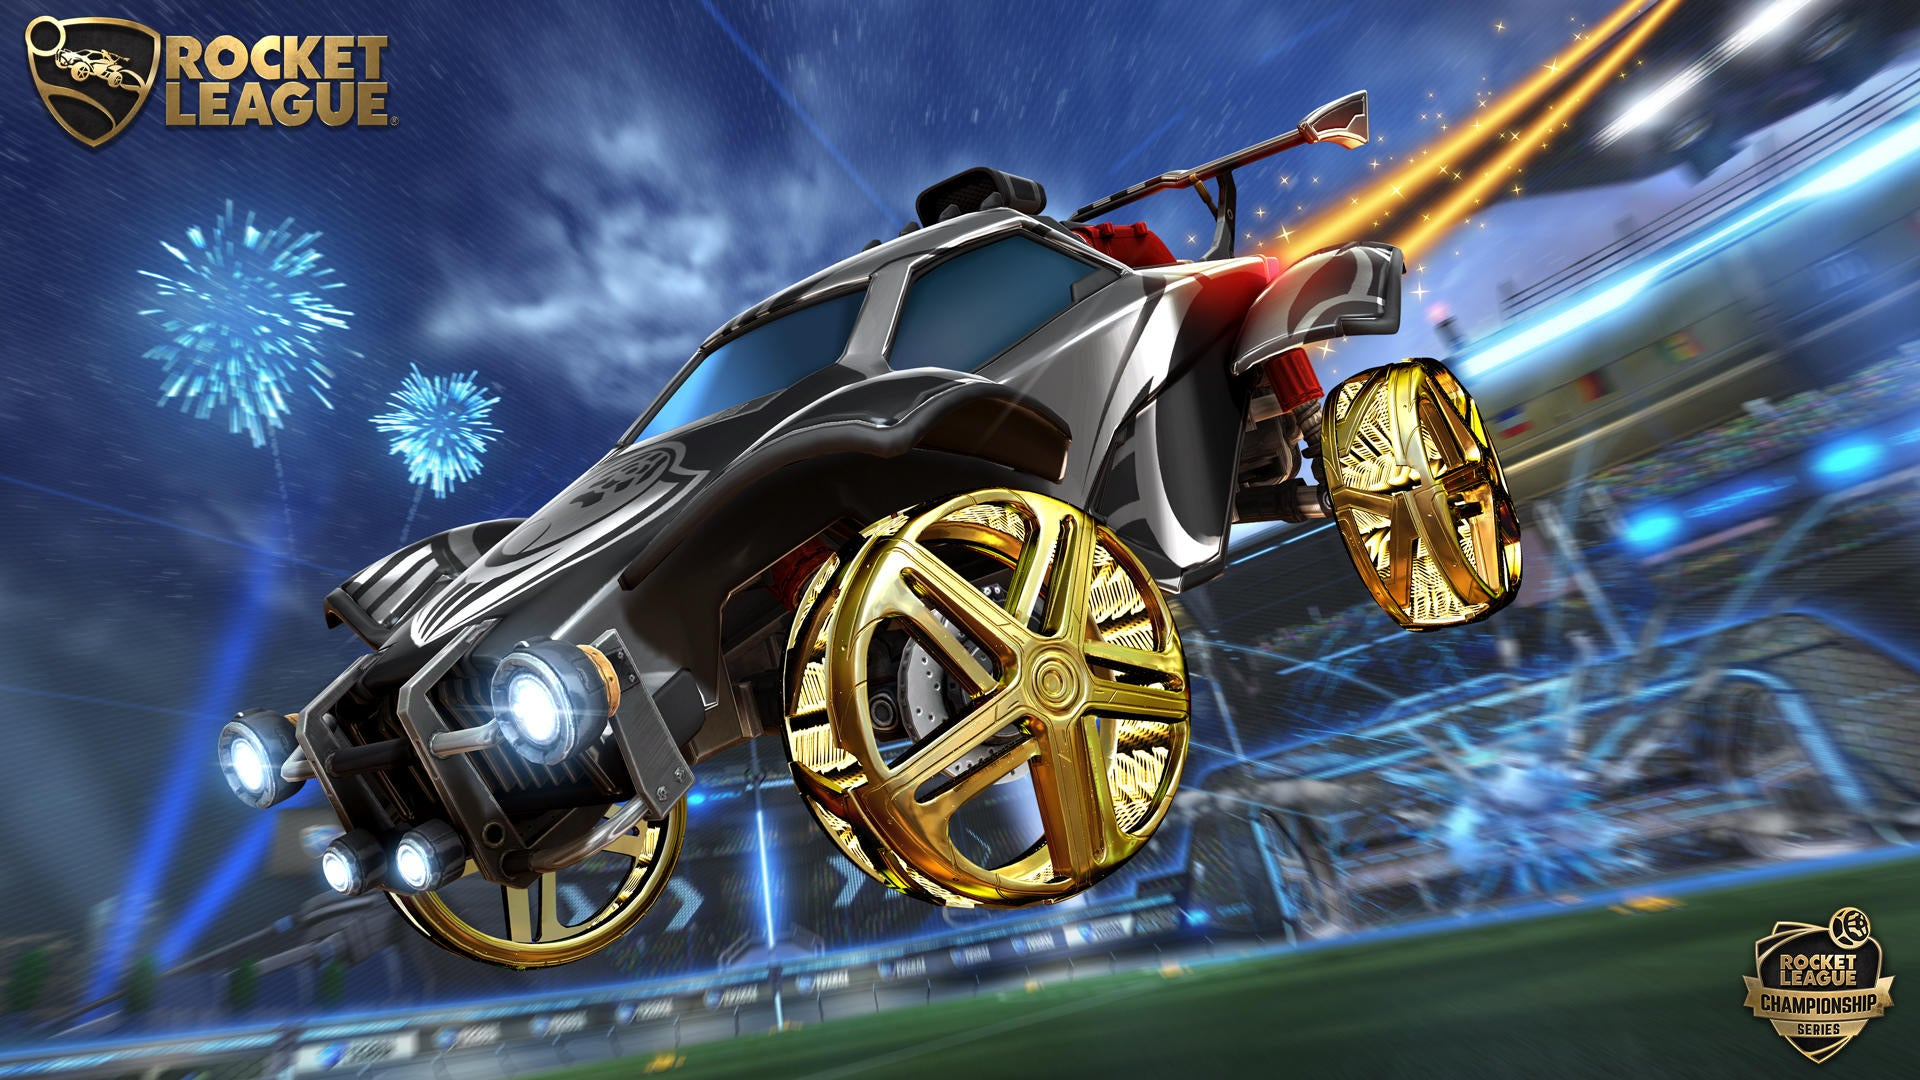 Grab Your Tickets to the Season 8 Rocket League World Championship! Image